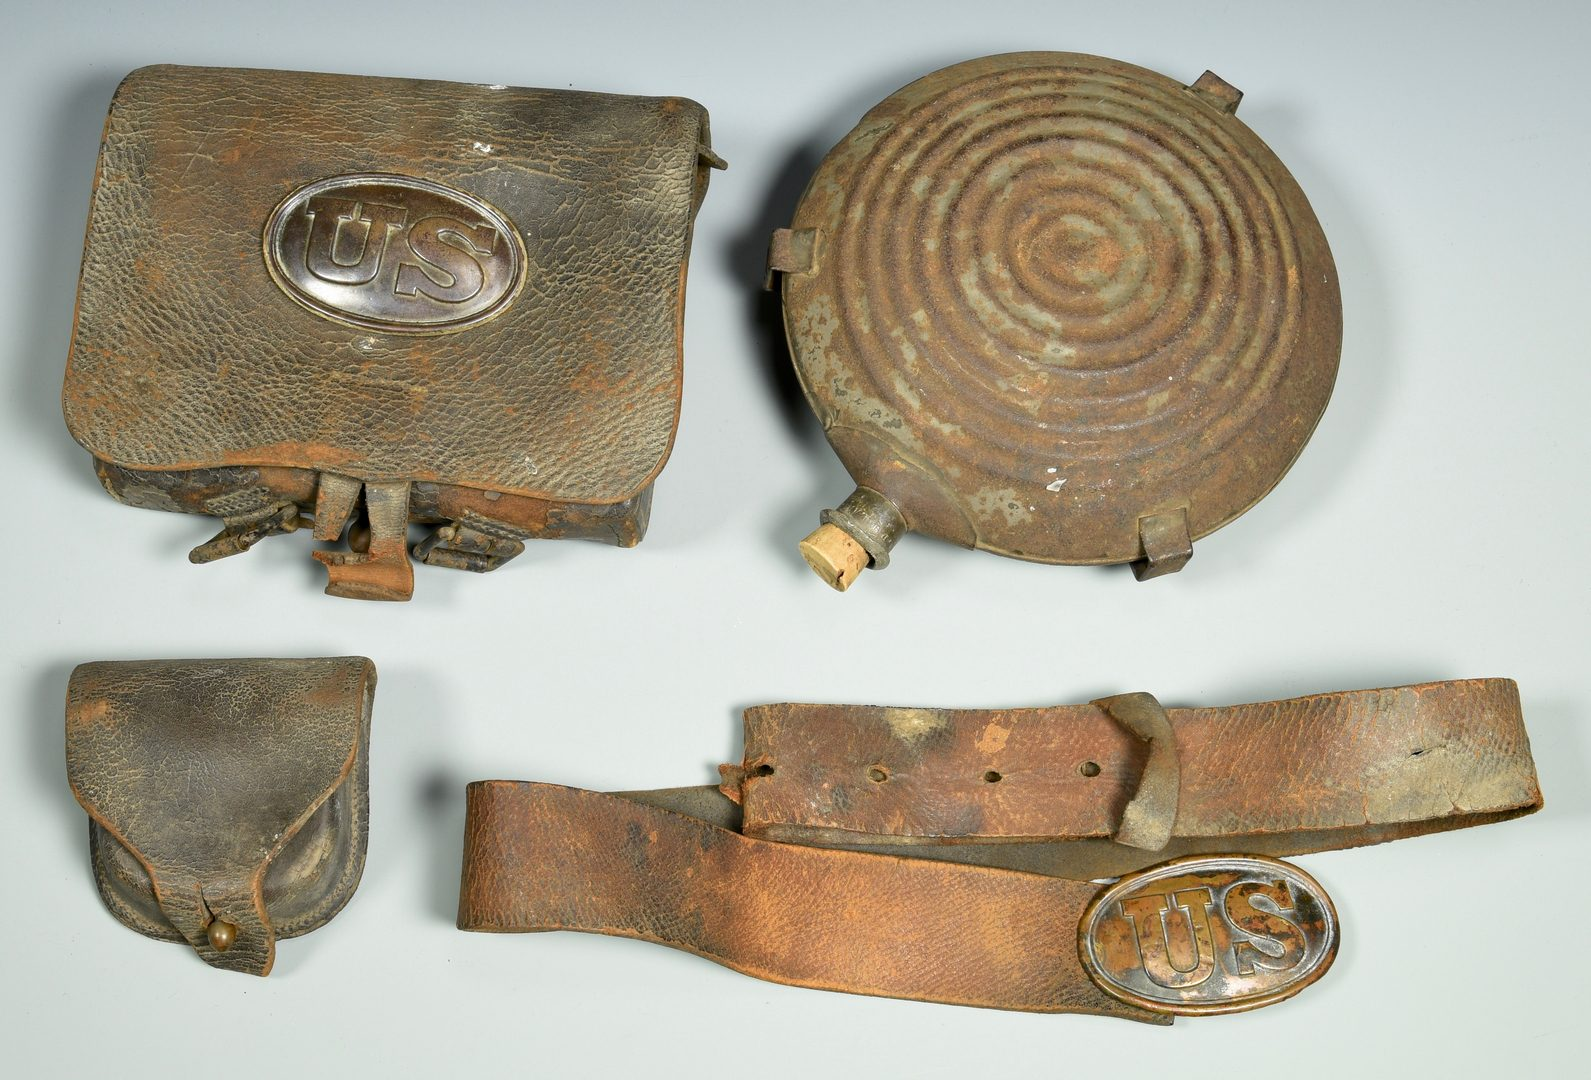 Lot 290: Grouping of 4 Civil War Military Items